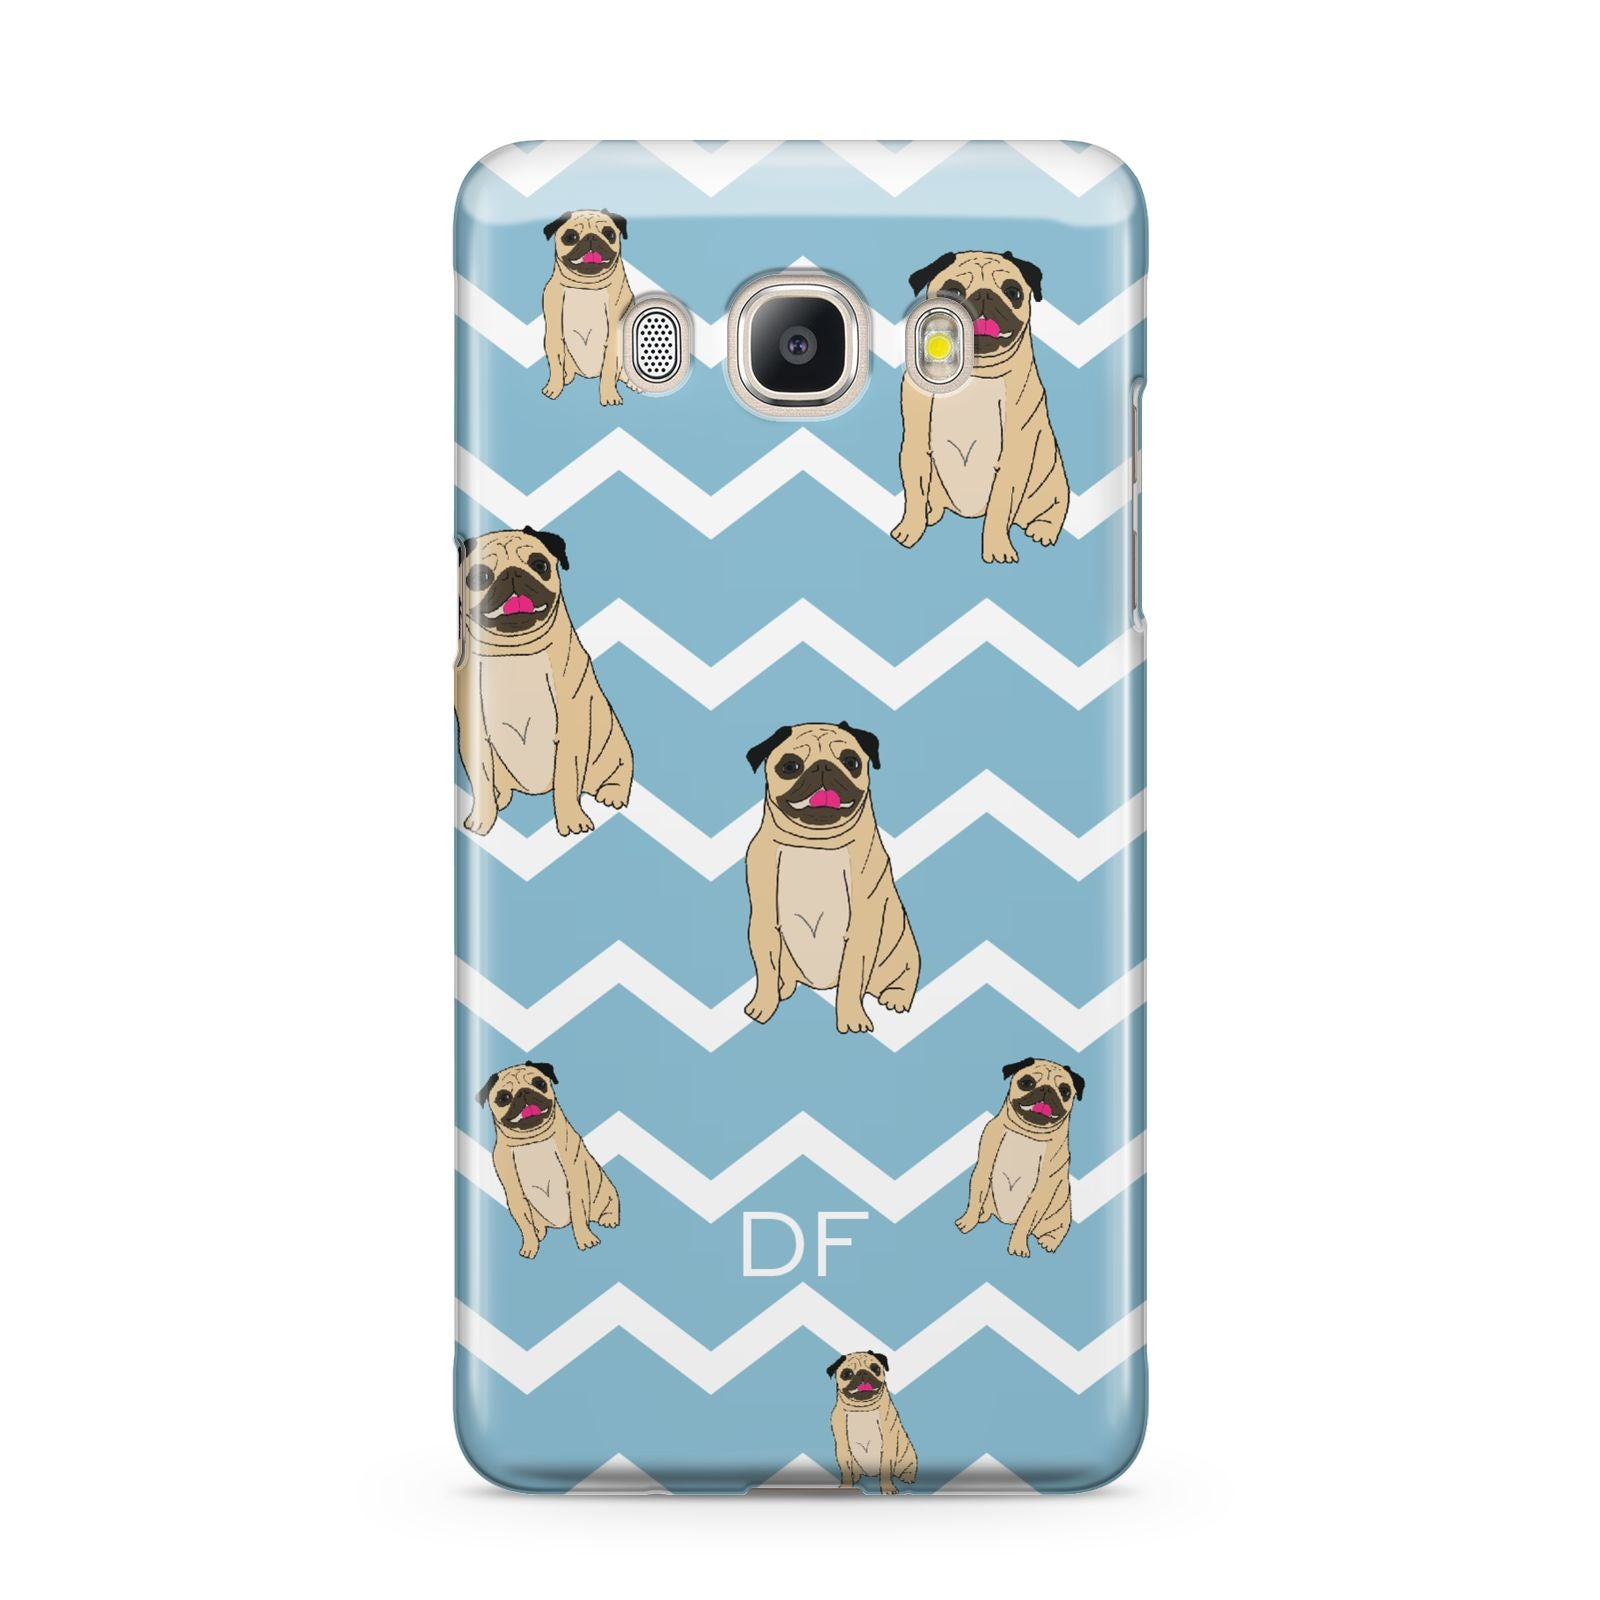 Personalised Pug Initials Samsung Galaxy J5 2016 Case